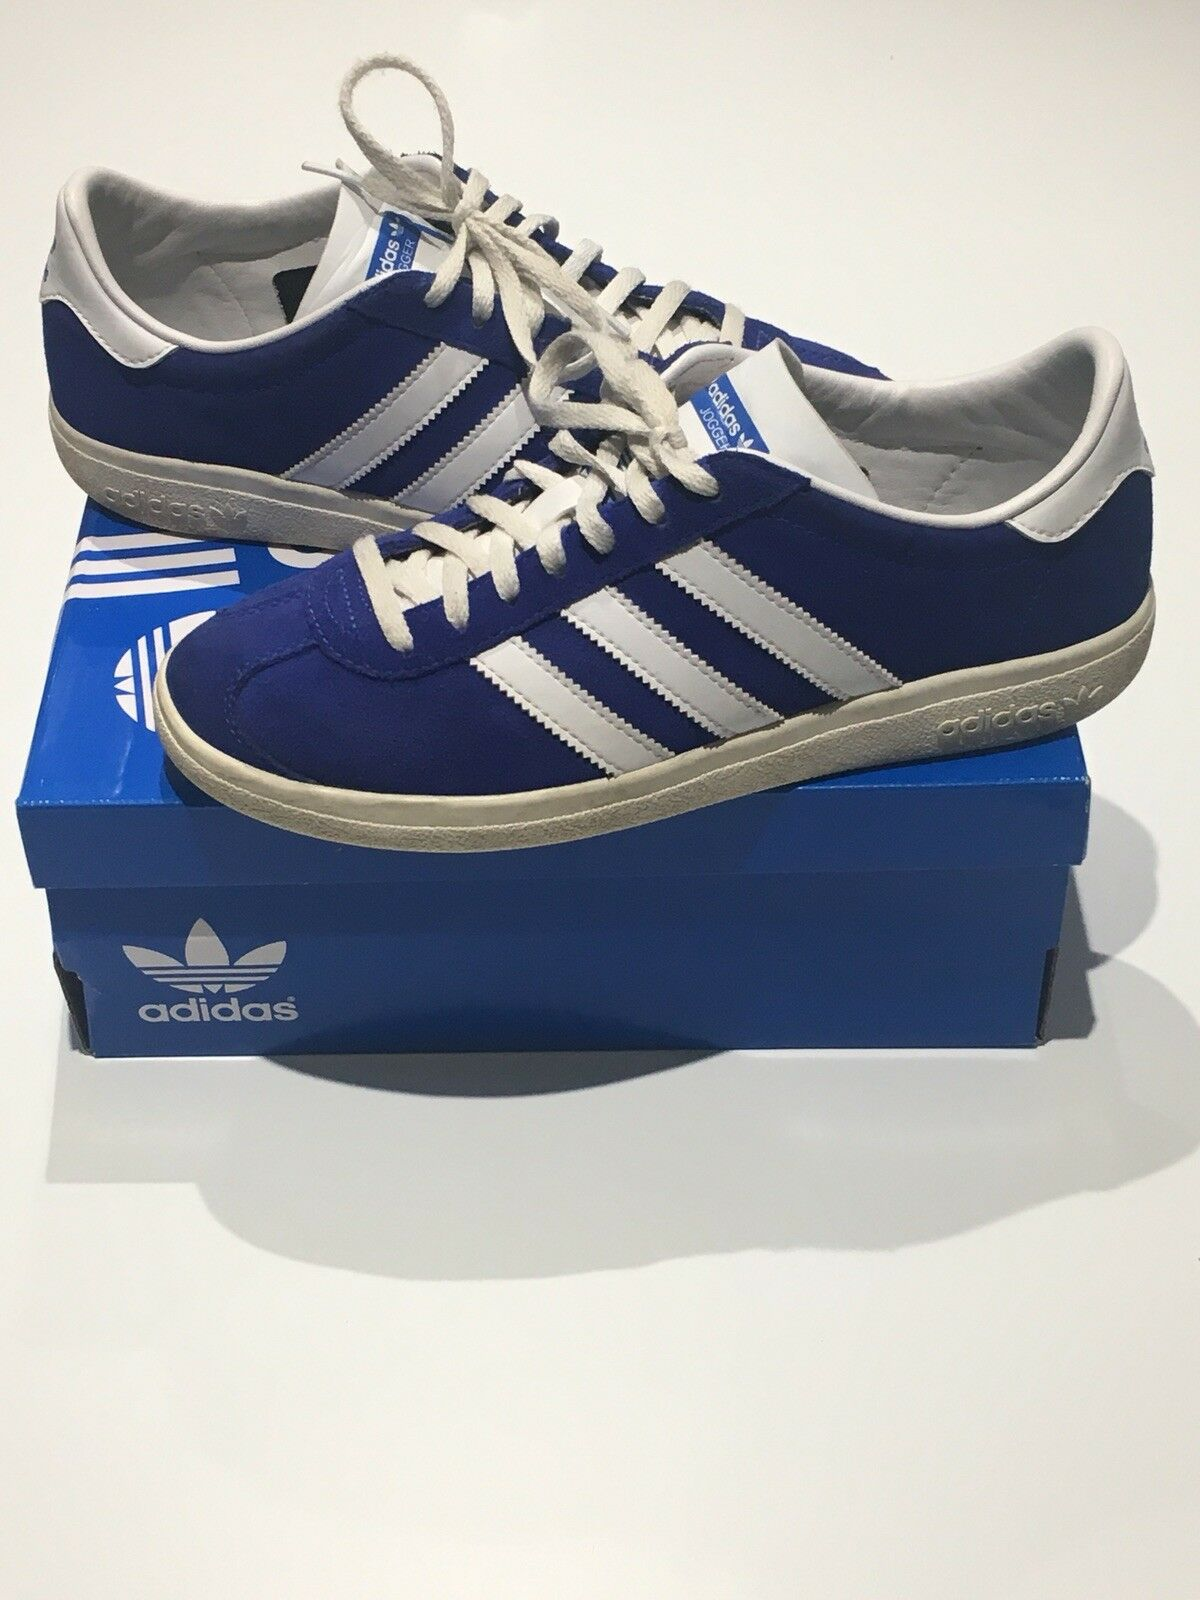 Adidas Jogger SPZL - Size 6.5 - Box, Extra Laces and Leather Tag - Rare shoes